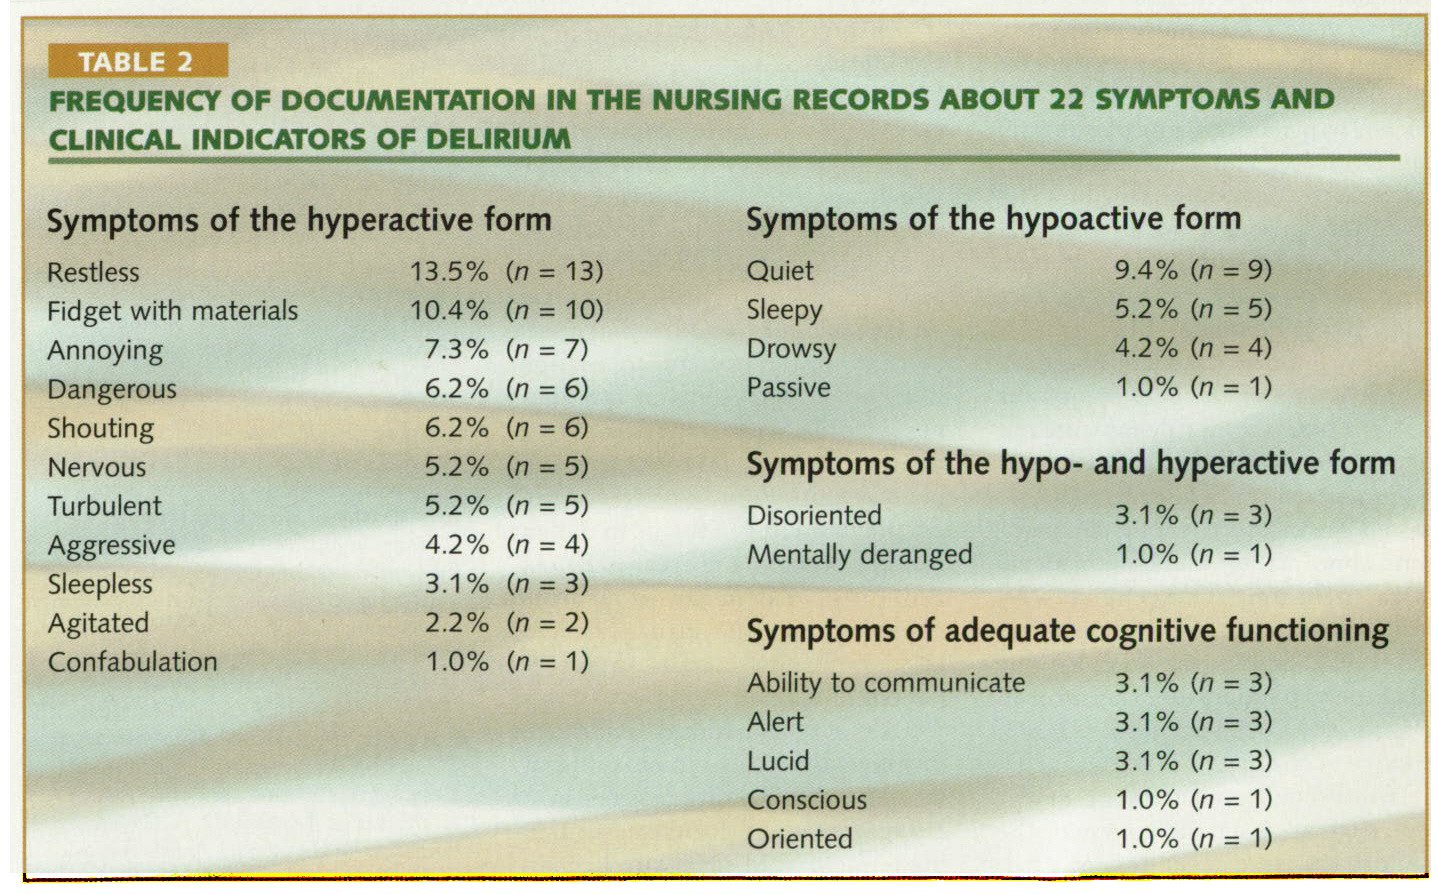 TABLE 2FREQUENCY OF DOCUMENTATION IN THE NURSING RECORDS ABOUT 22 SYMPTOMS AND CLINICAL INDICATORS OF DELIRIUM